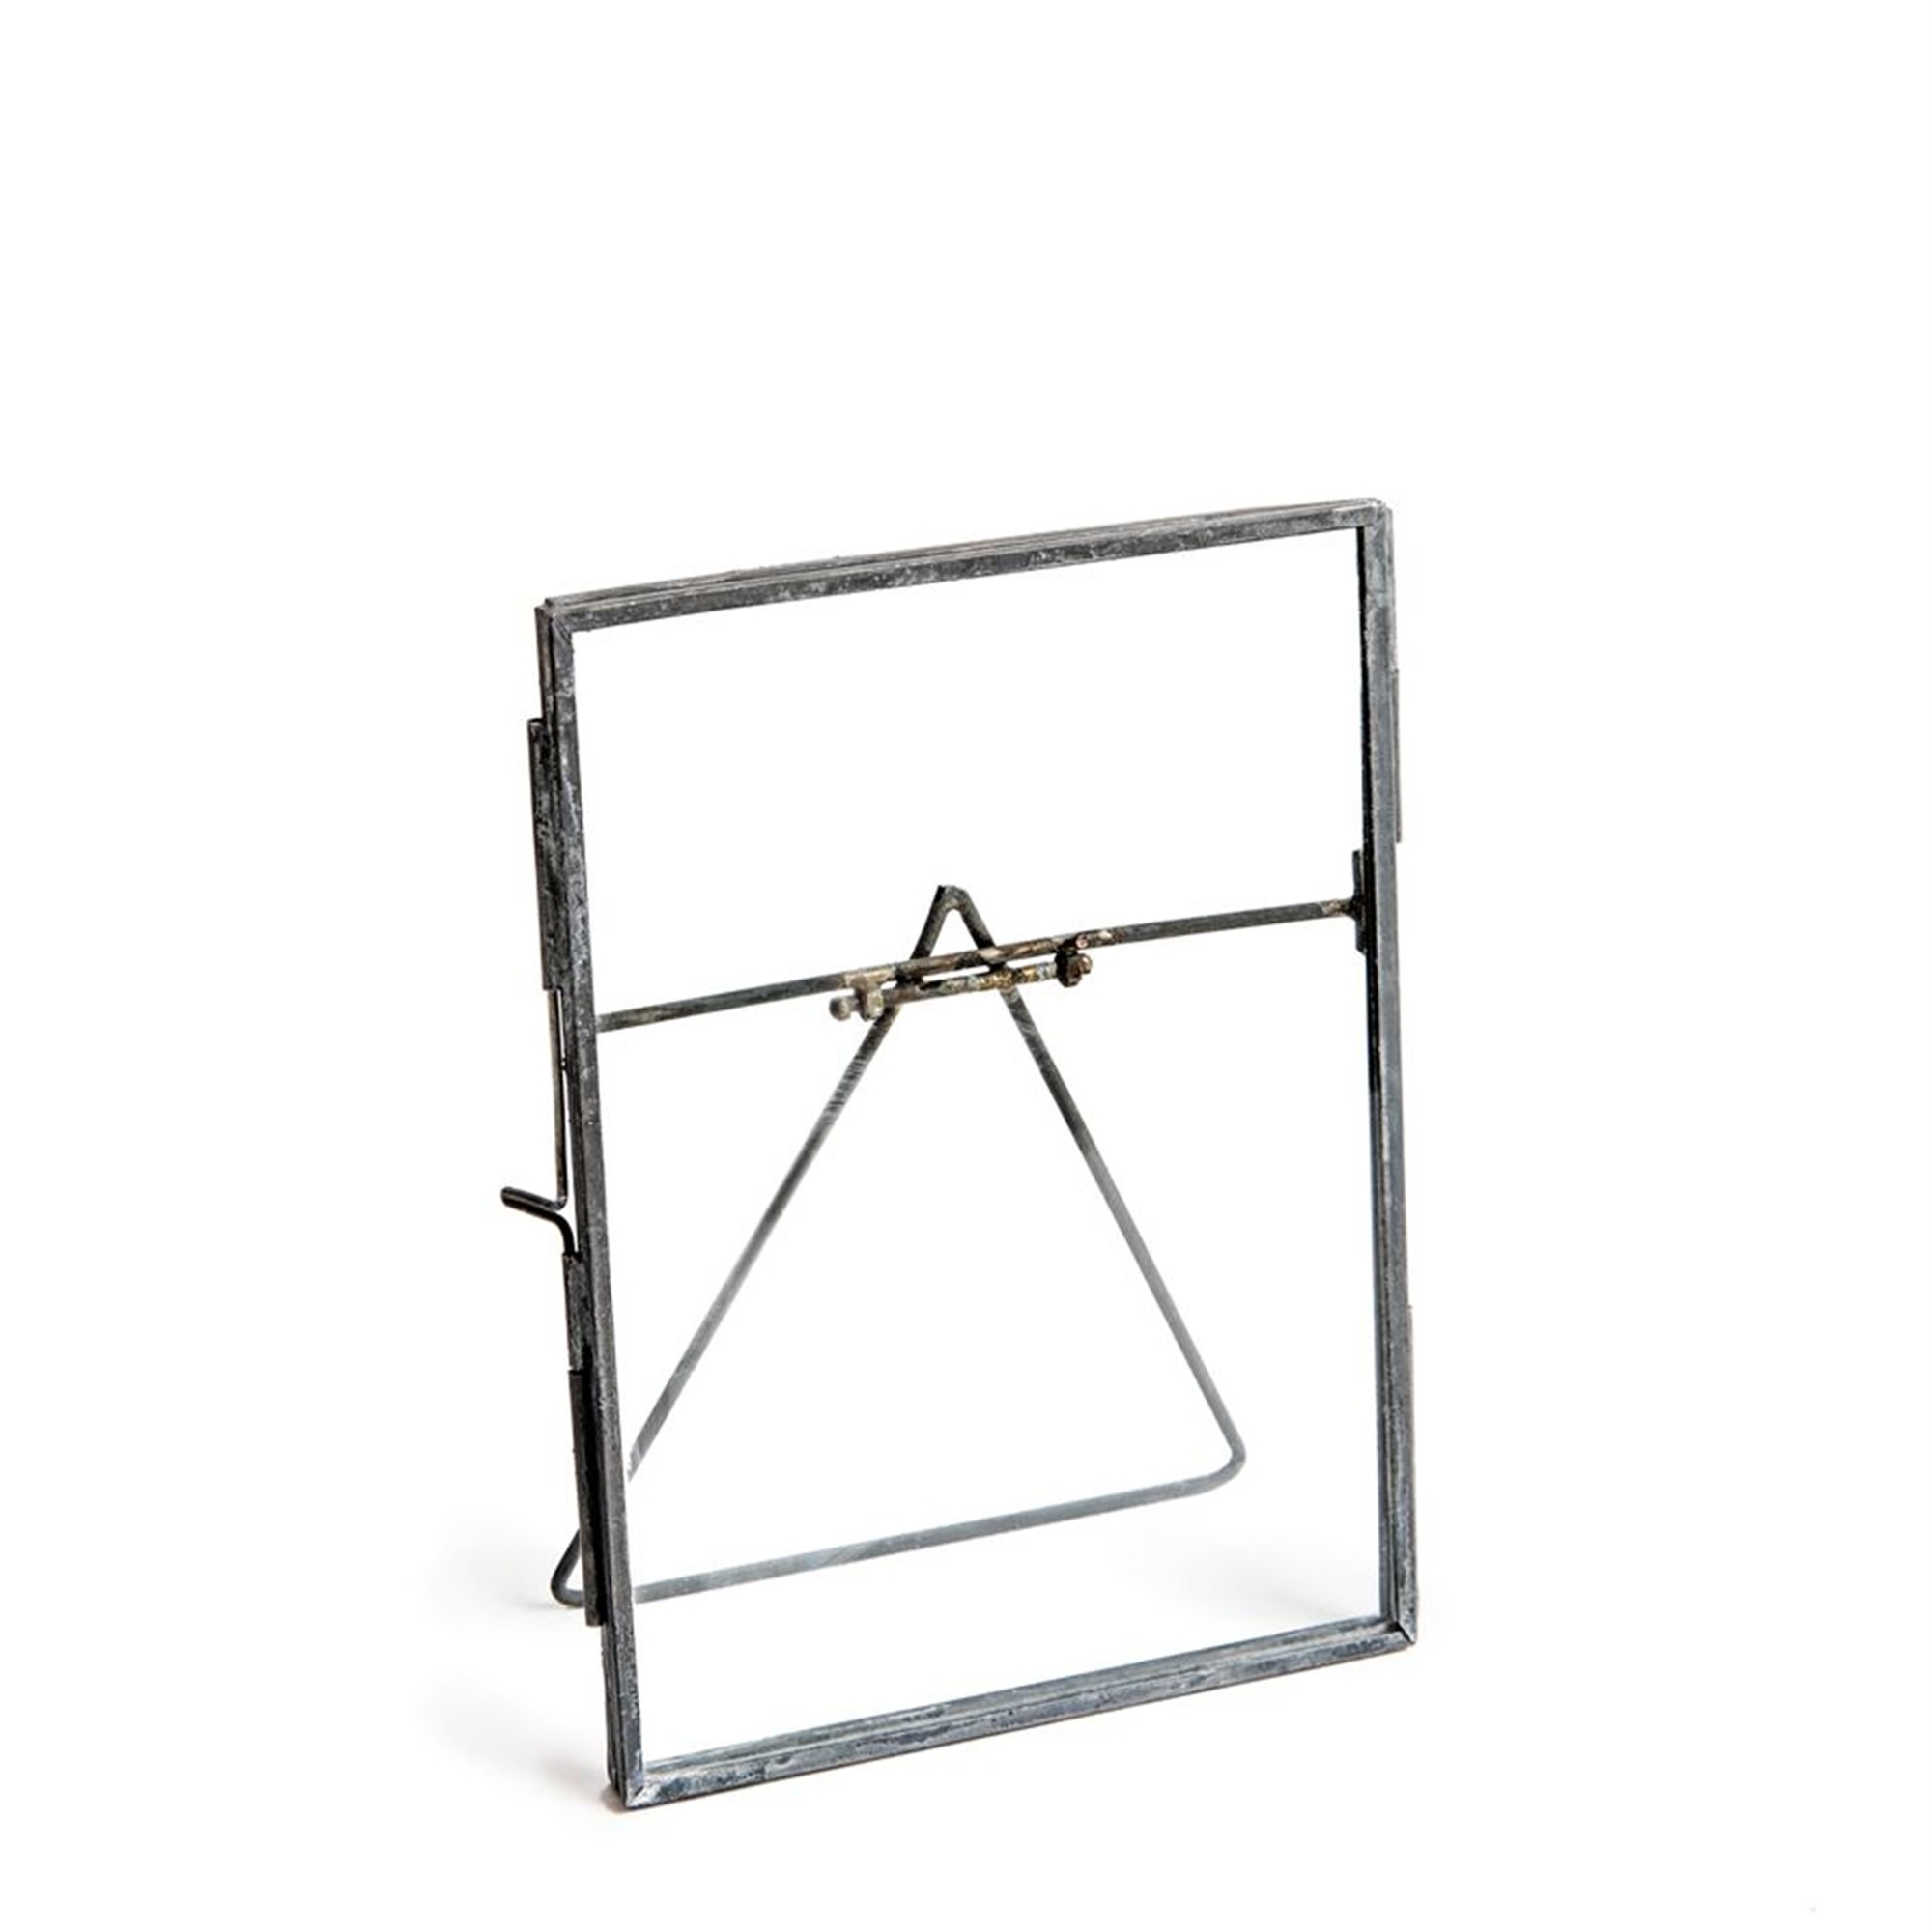 SugarBoo Designs Zinc Finish Frame w/ Stand, 5x7